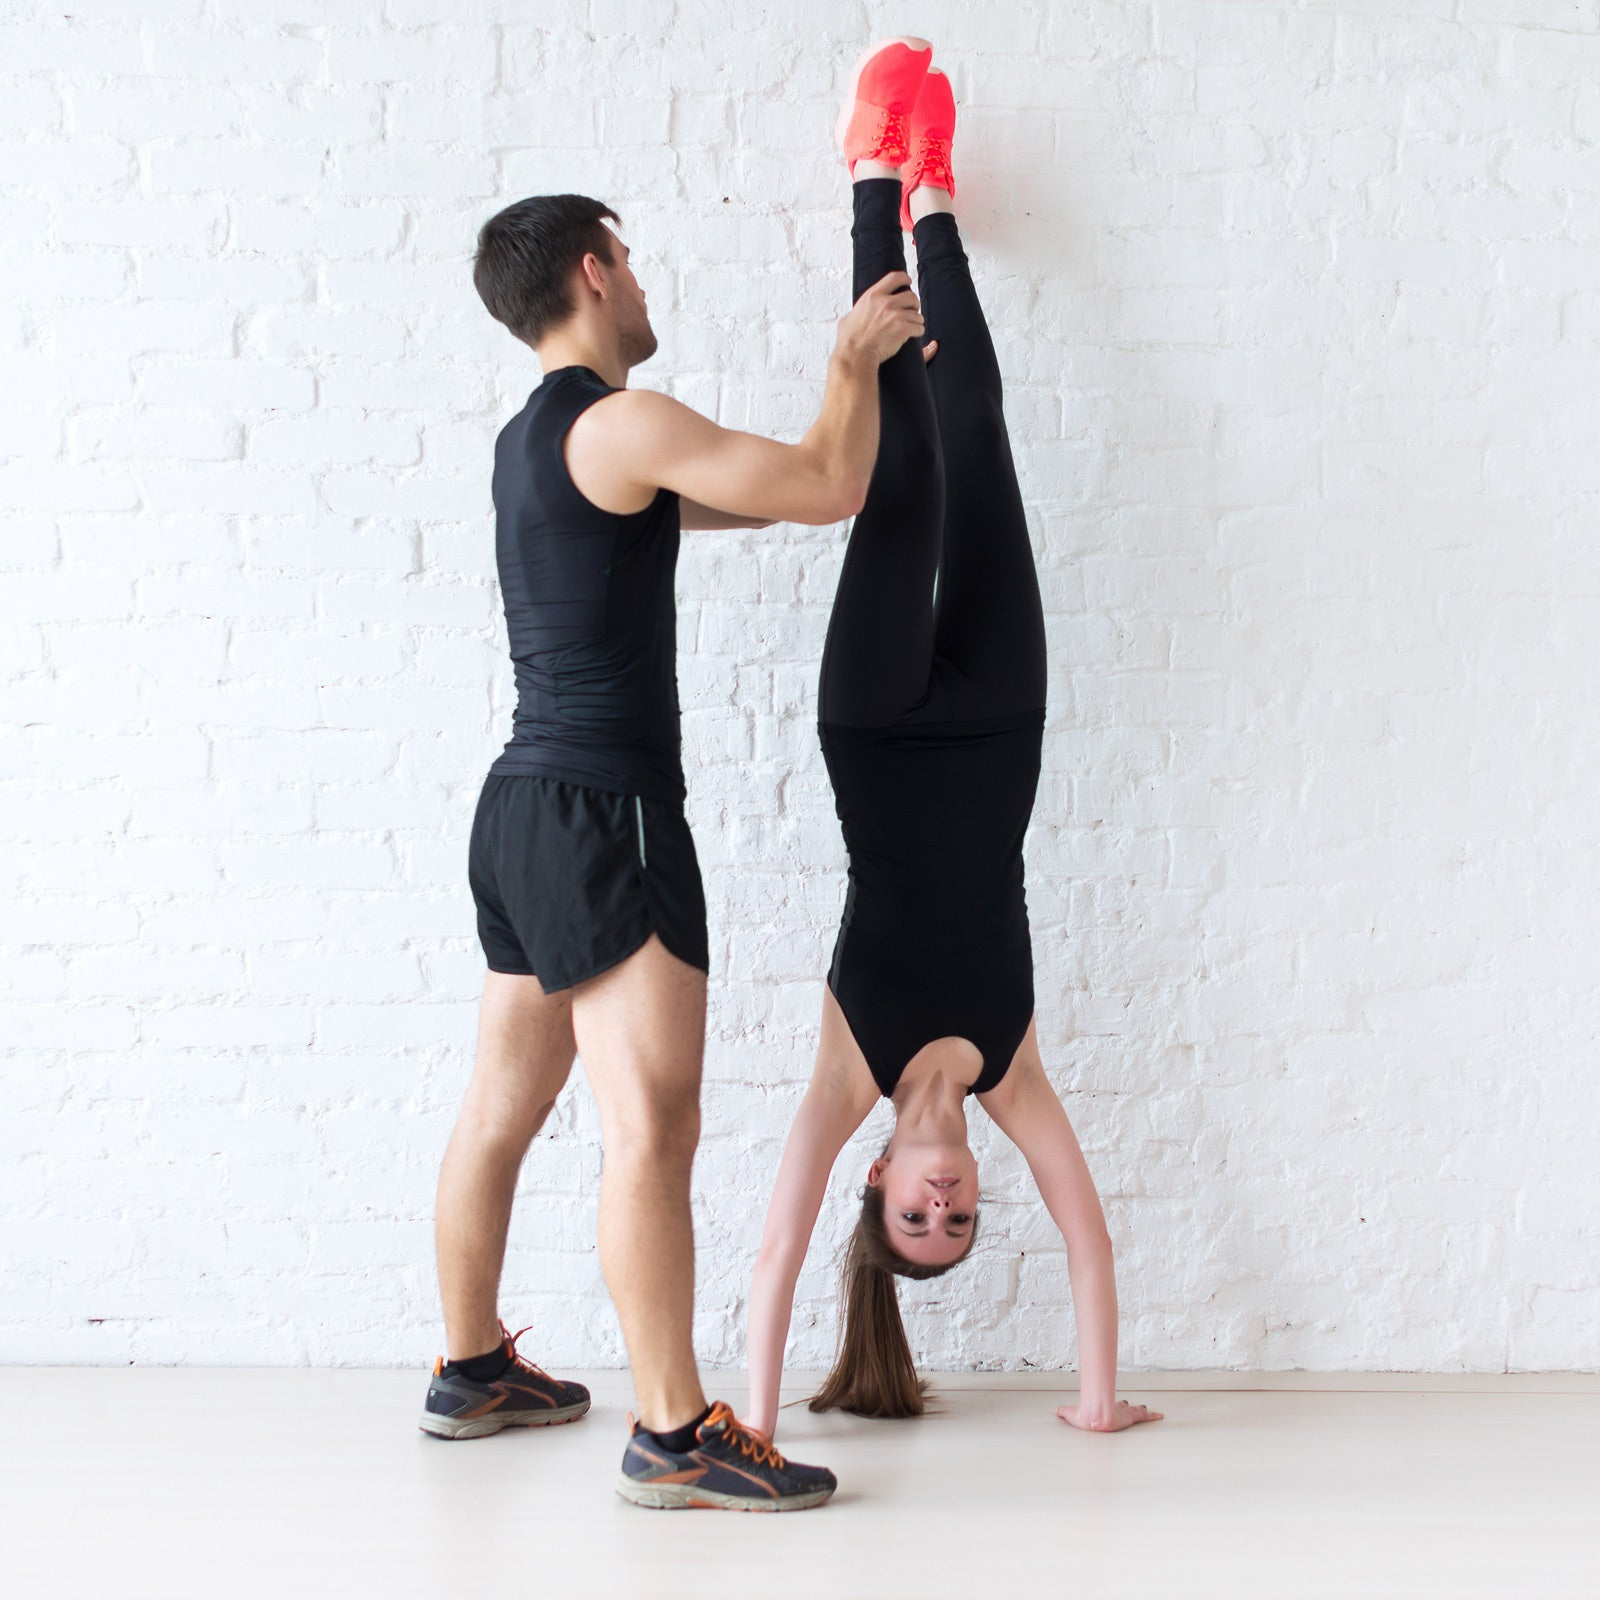 man assisting woman into handstand